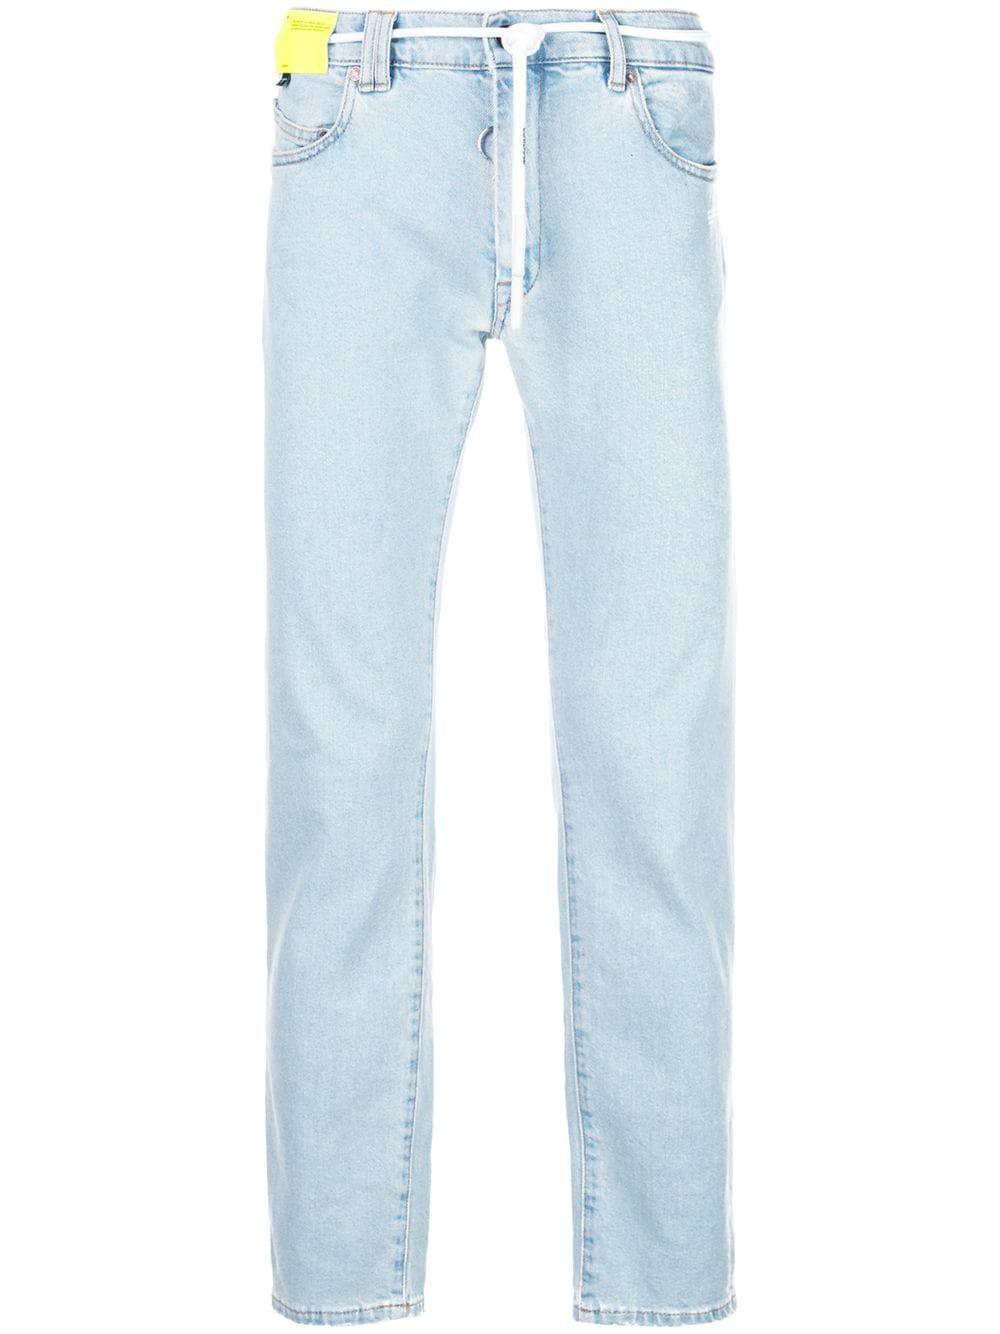 43437d59 Off-White slim fit jeans - Blue in 2019   Products   Off white ...